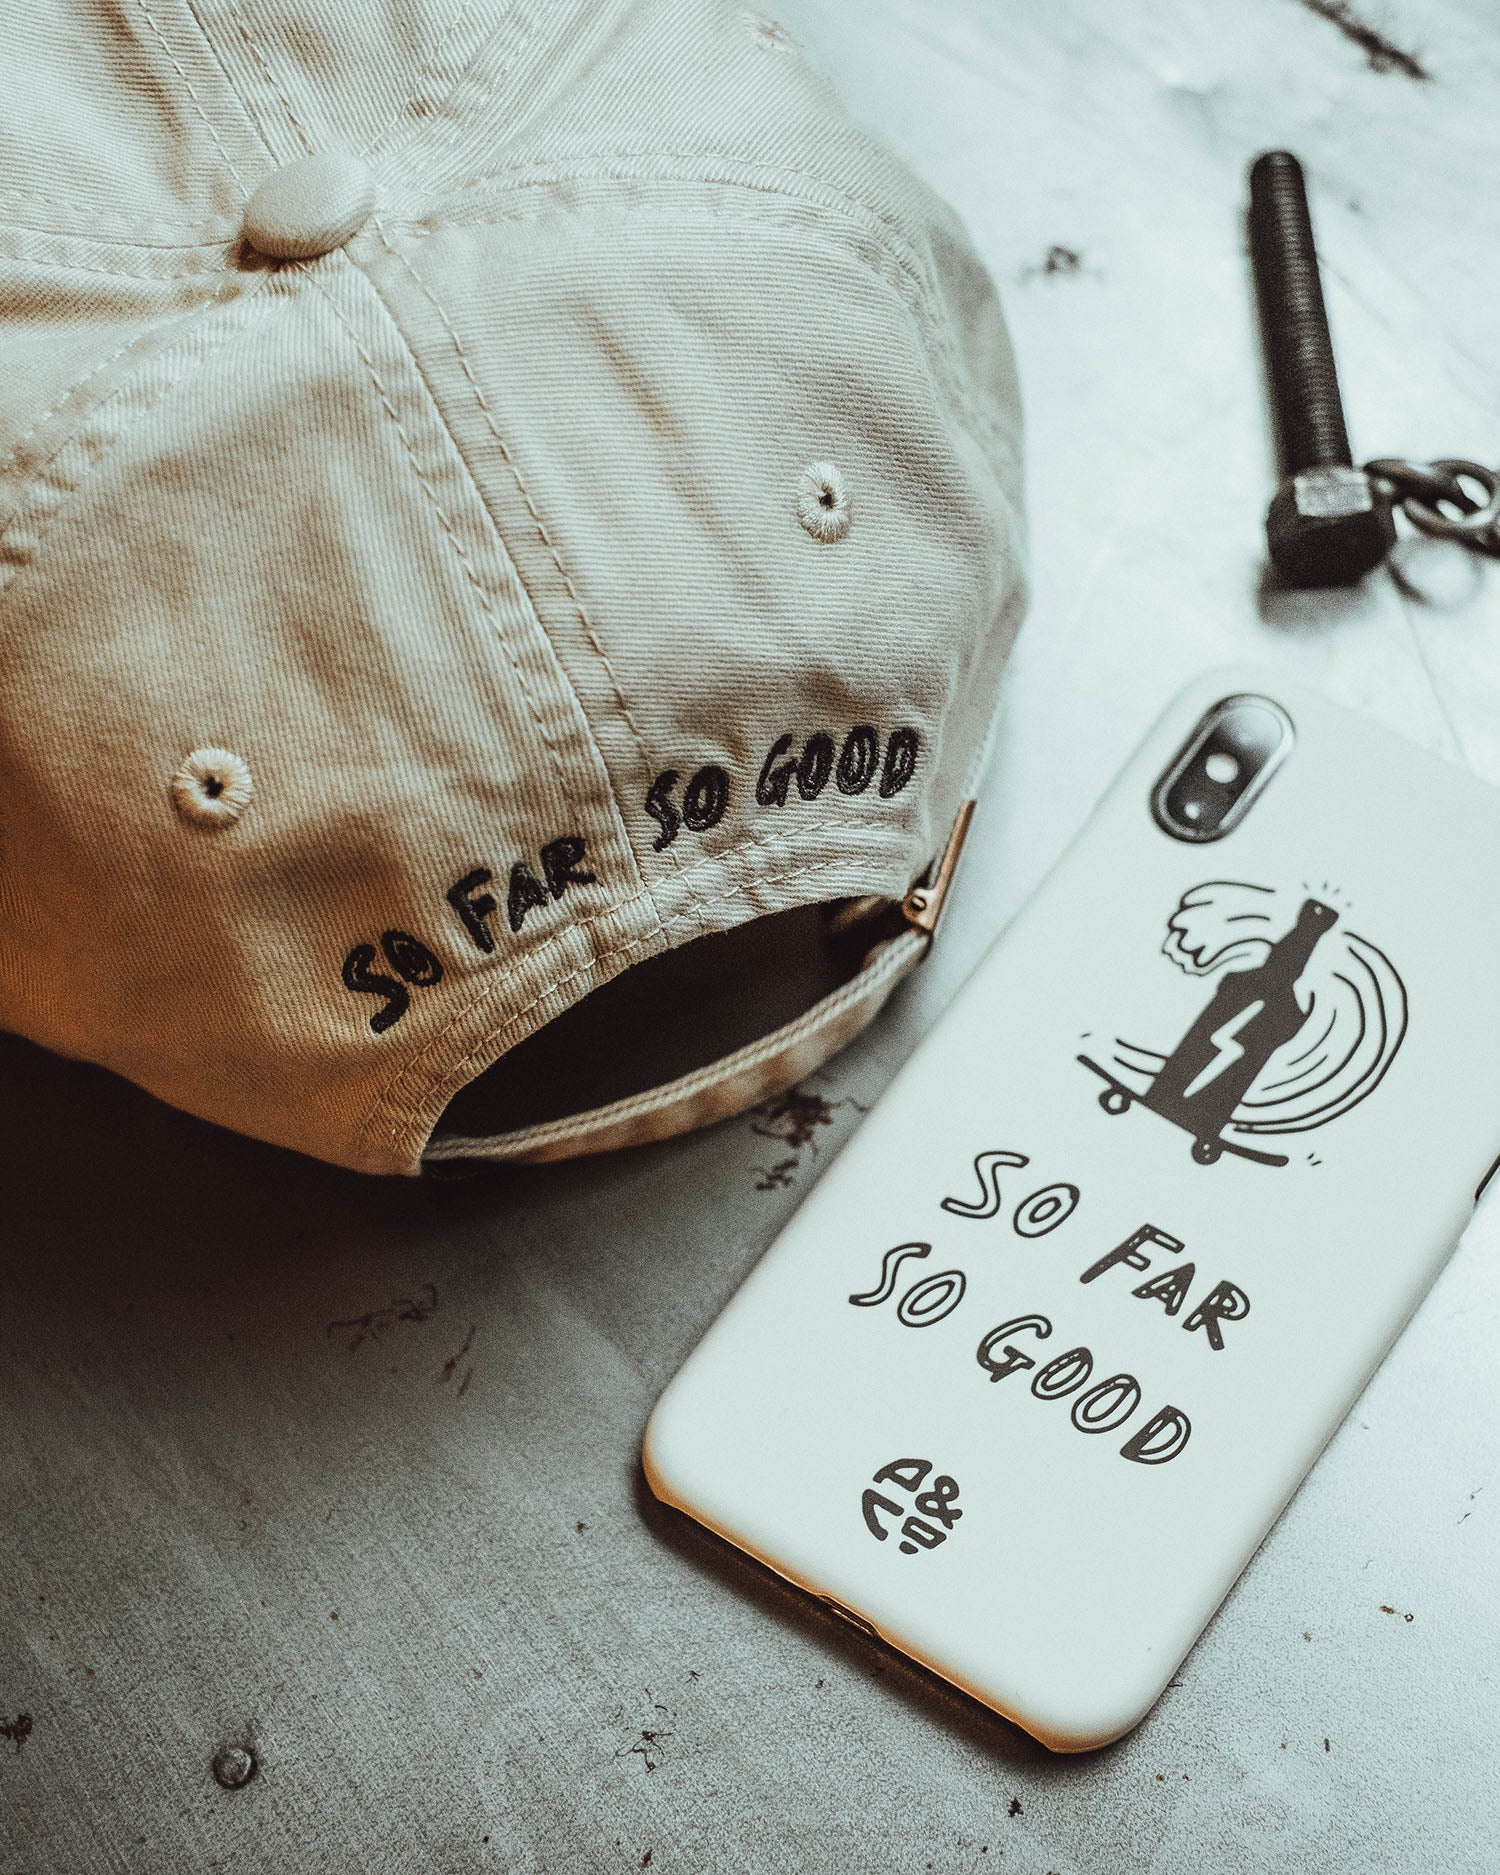 So Far So Good Iphone Case - Rustic Lifestyle